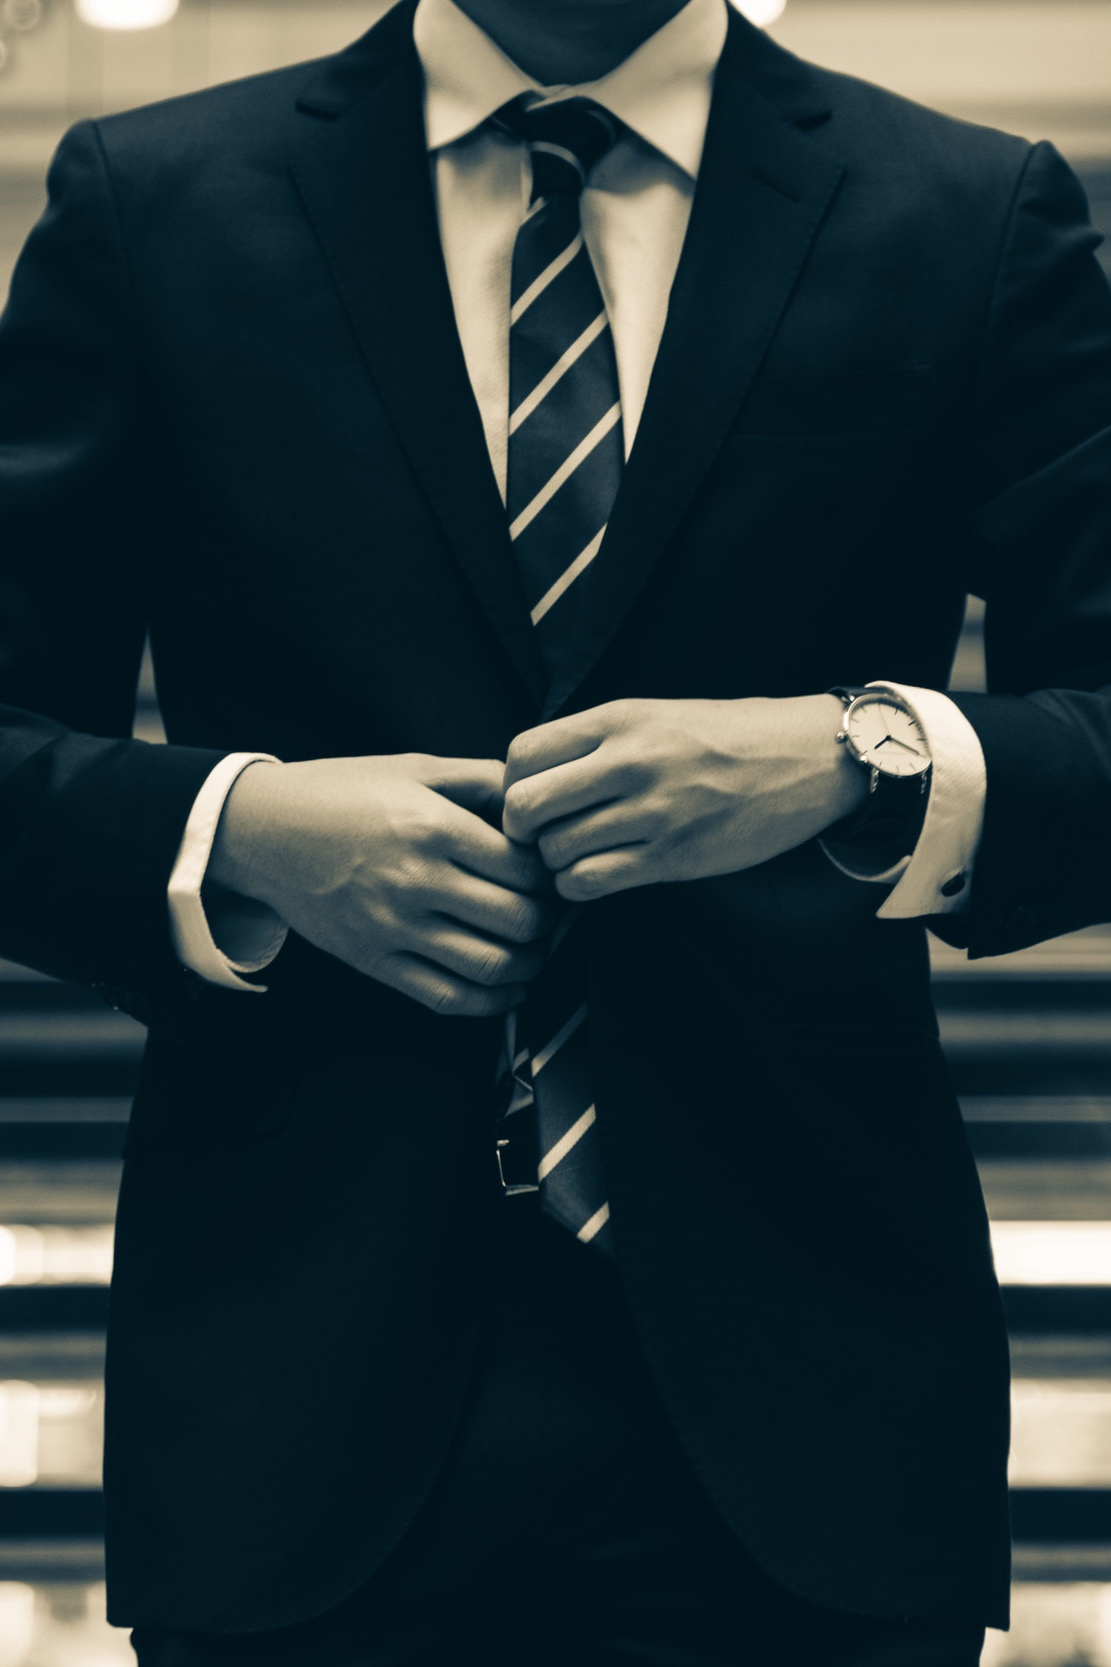 Man in a corporate setting buttoning his suit